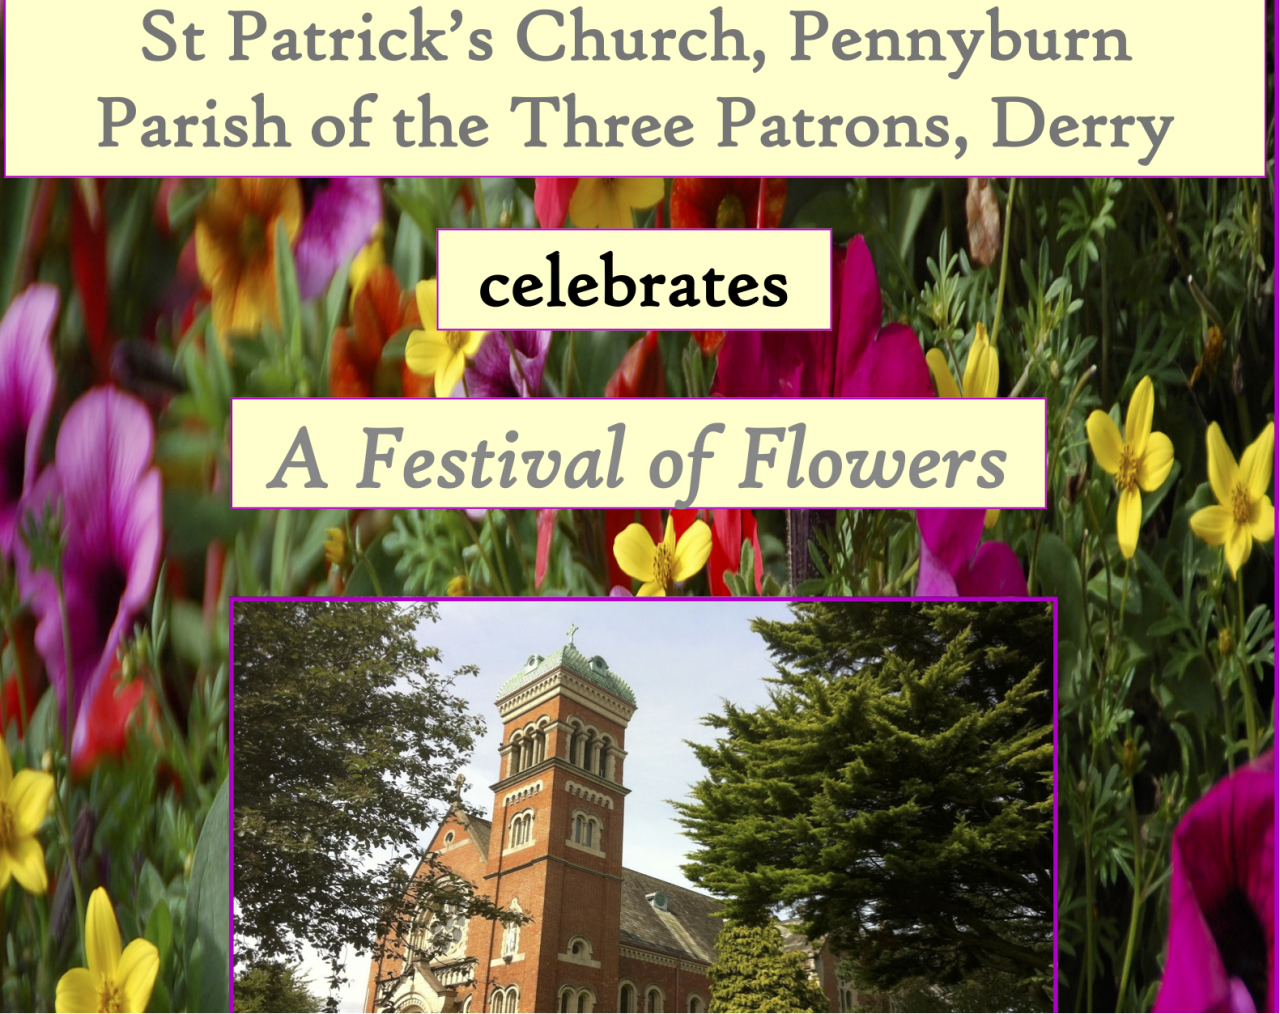 Festival of Flowers at St Patrick's Pennyburn - 3rd to 5th June 2017